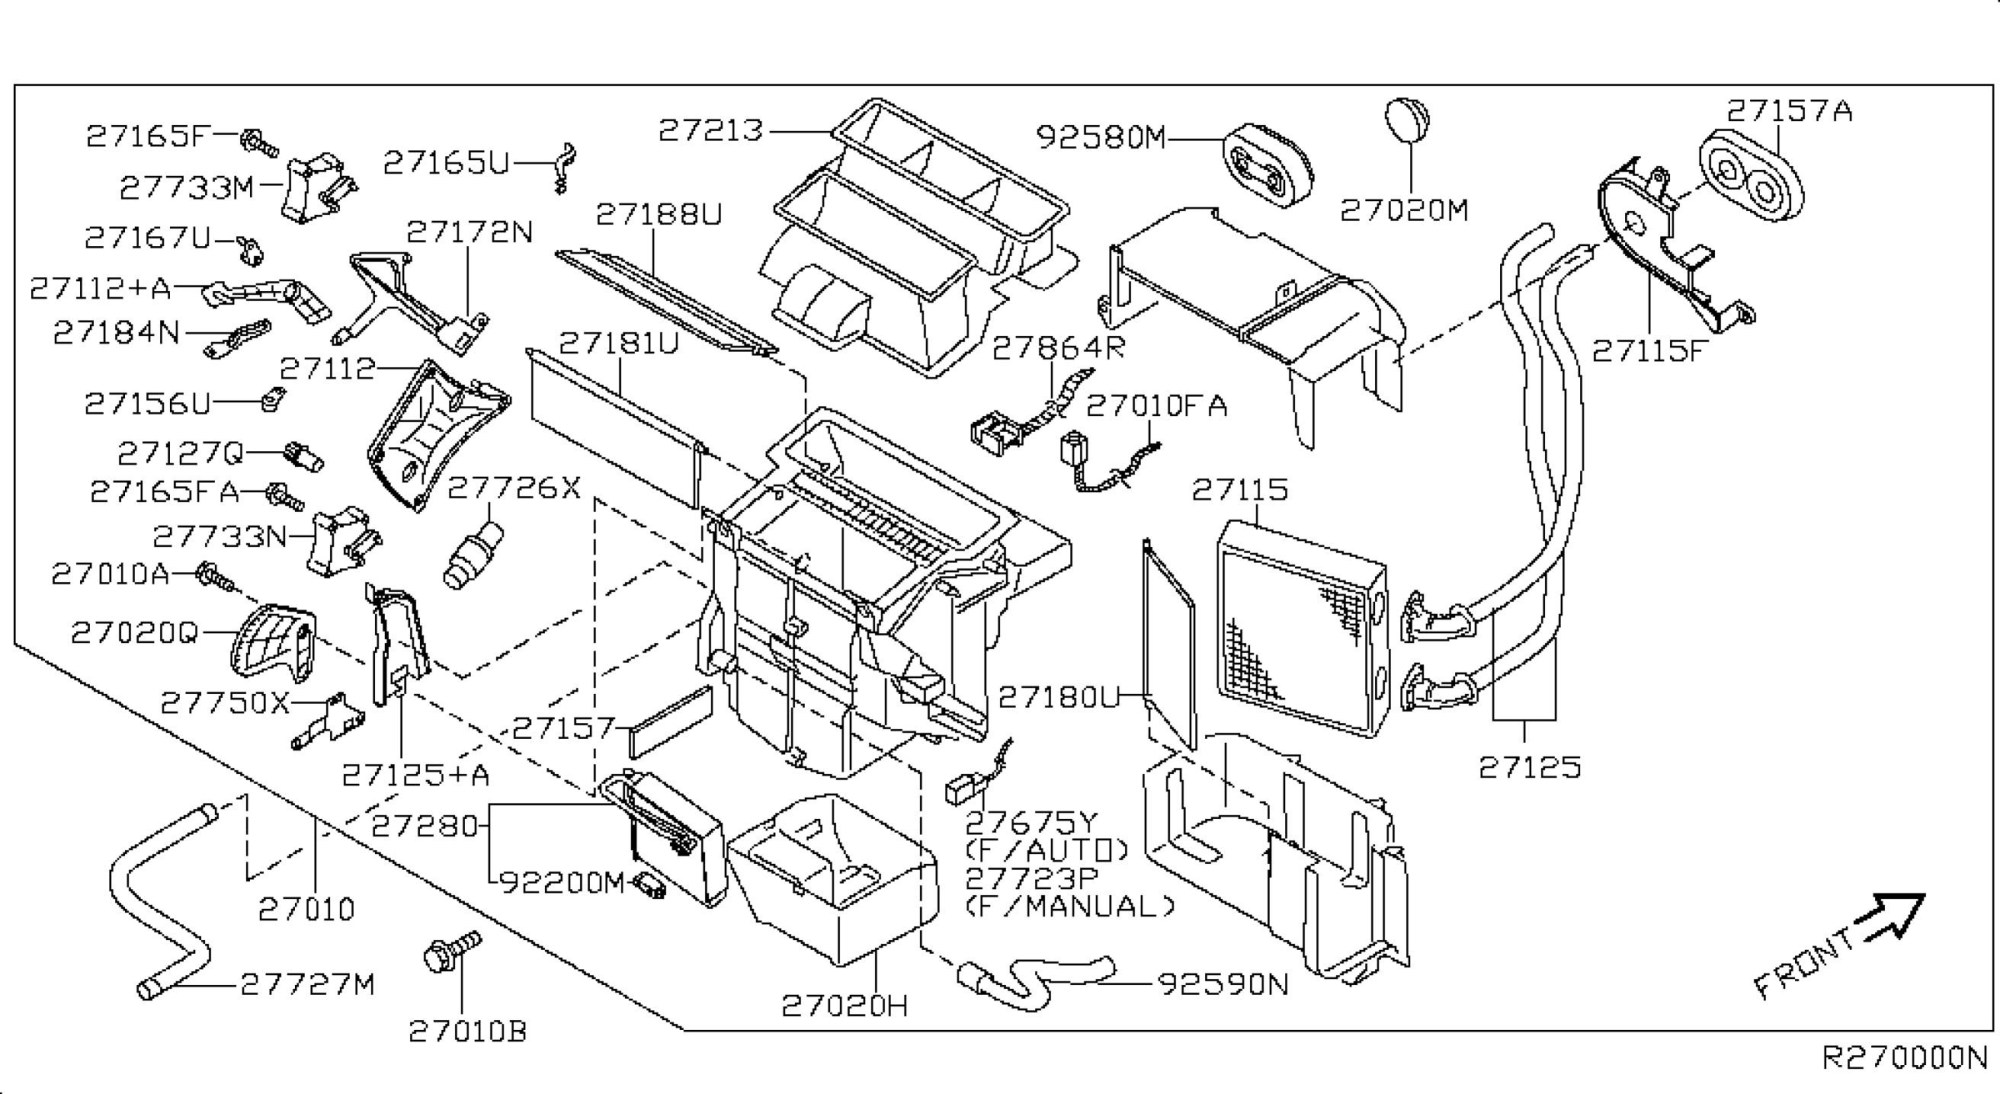 hight resolution of 2003 nissan pathfinder engine diagram 2003 nissan altima exhaust system diagram moreover 2000 nissan of 2003